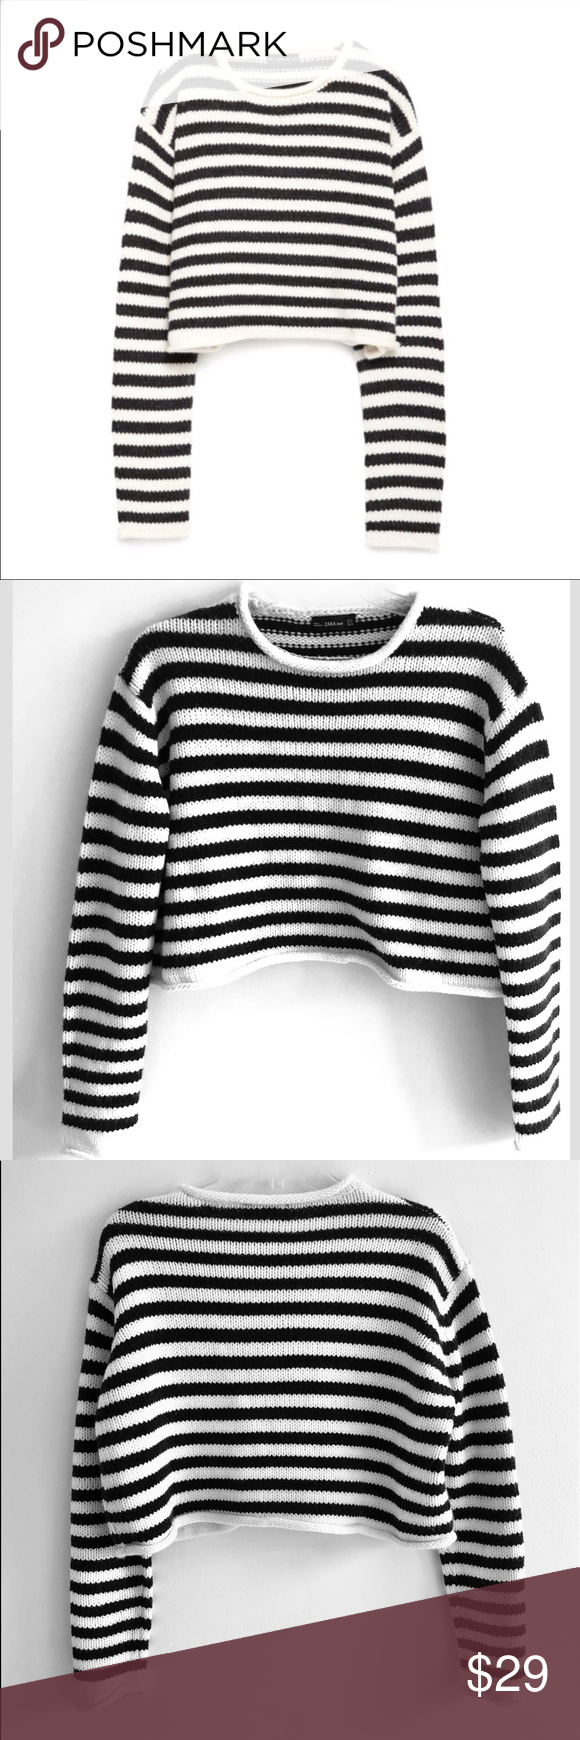 7e7e8739 Zara Knit Striped Cropped Sweater Chunky Knit Sweater in Black and cream  striped. Cropped length look great with high waist pants. Very good  condition.